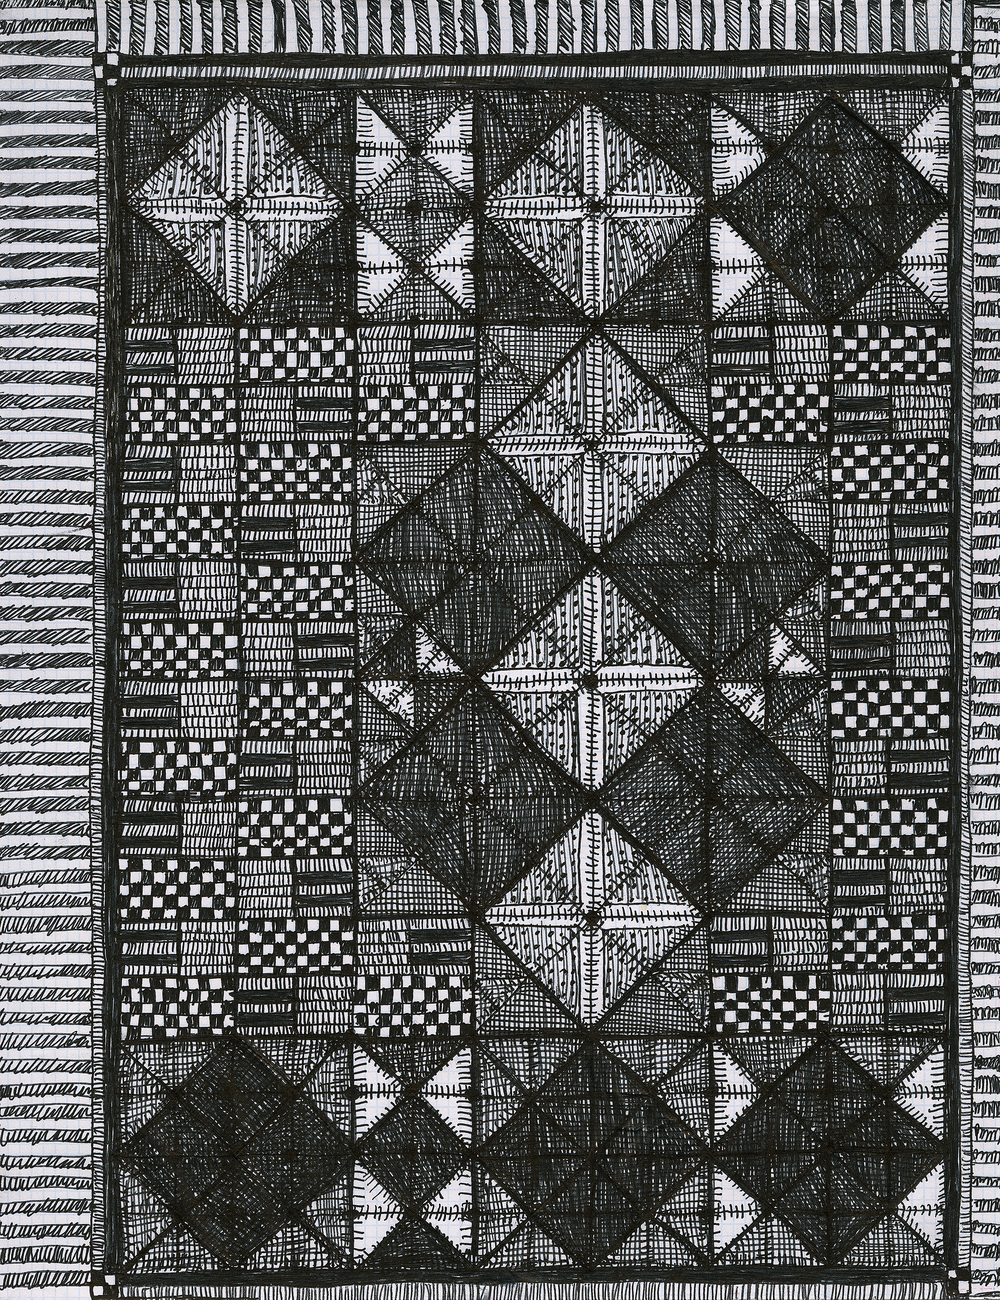 "Pen and Ink on Graph Paper, 2016, 8.5"" x 11"""